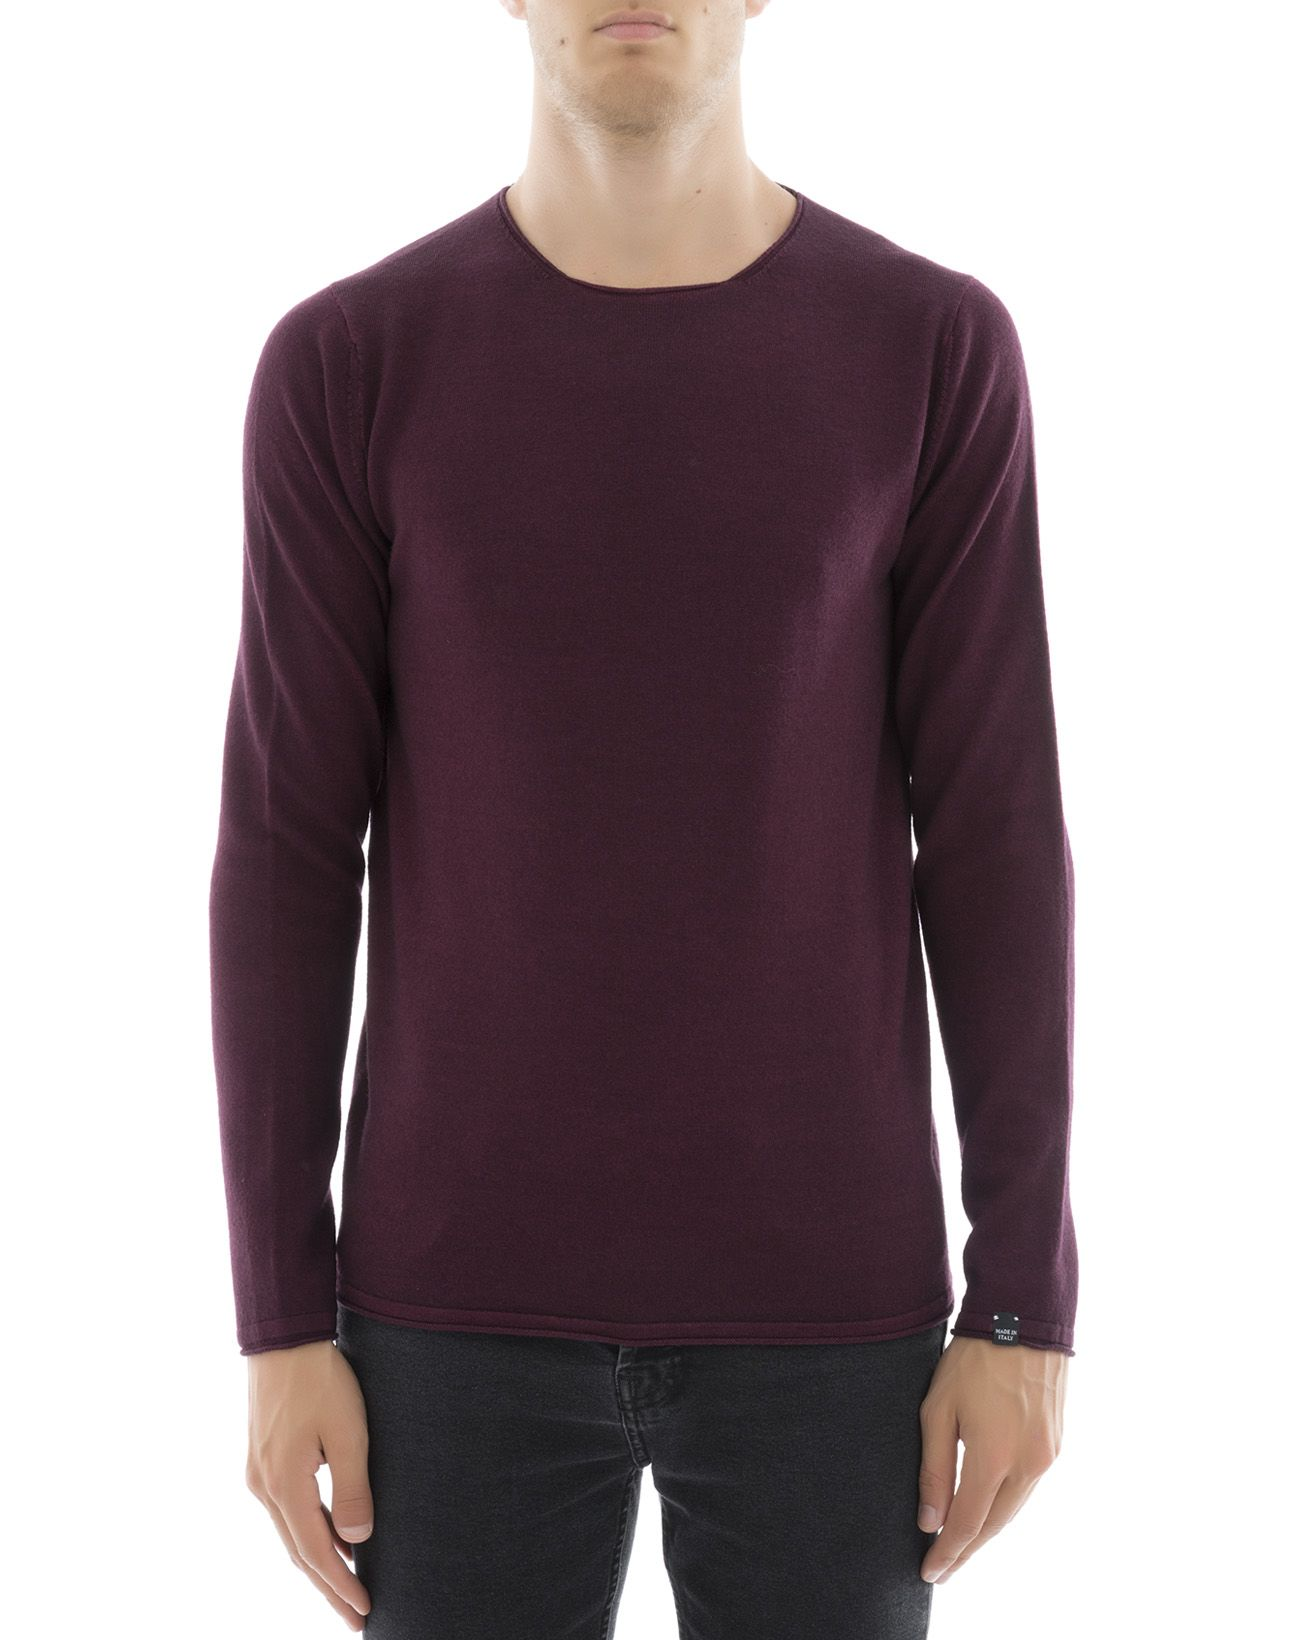 Bordeaux Wool Sweatshirt